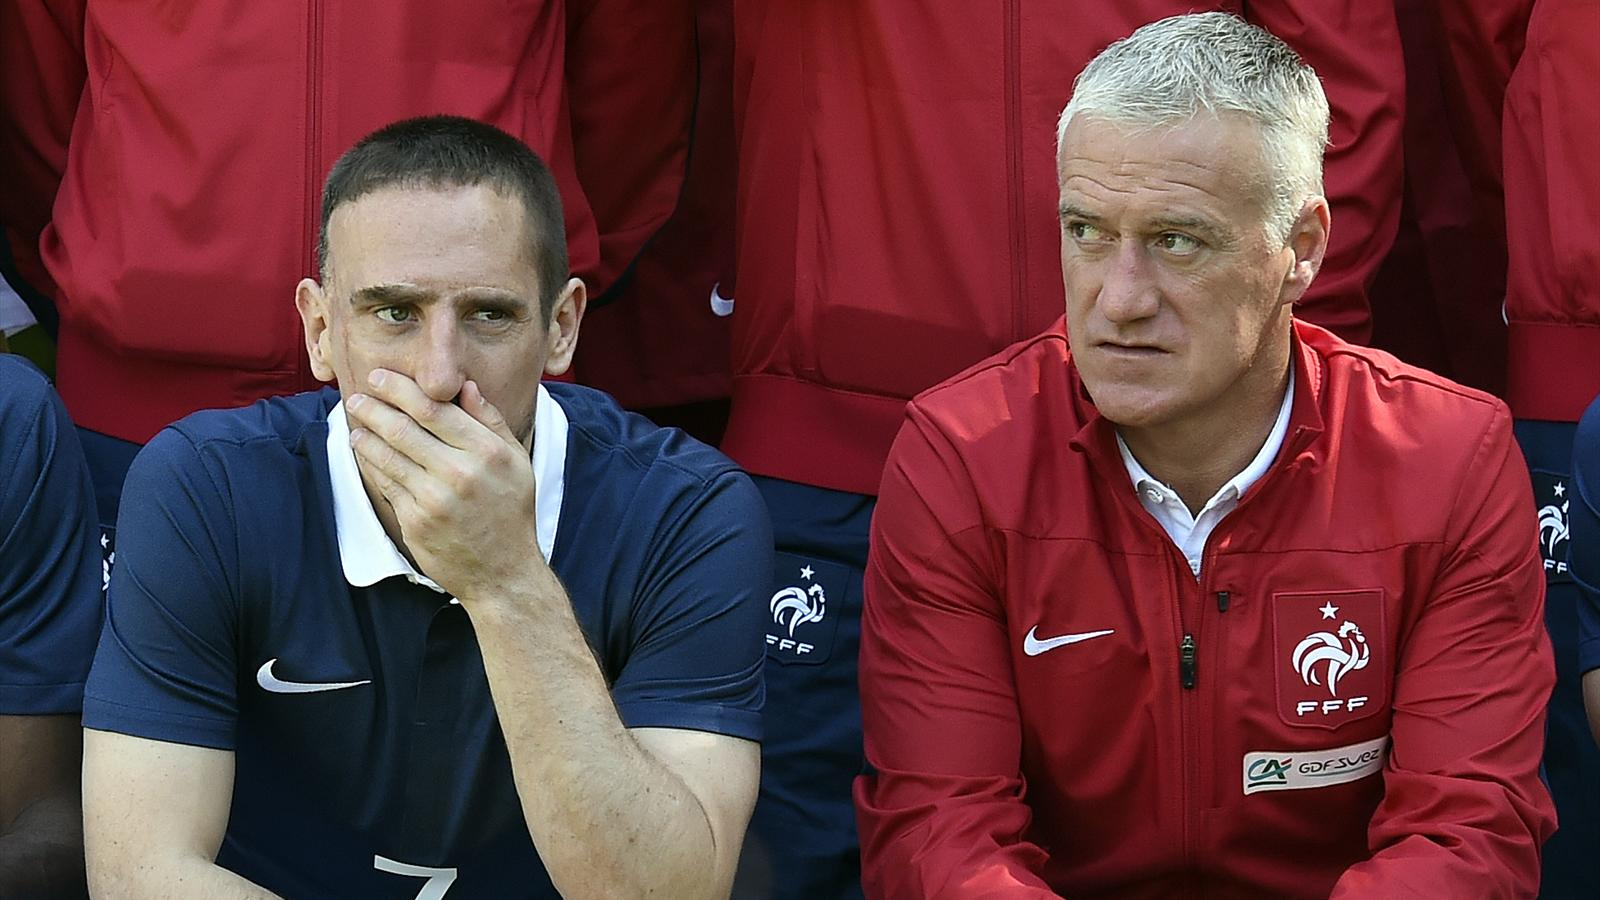 Faces closed by Franck Ribéry and Didier Deschamps during the official photo of the French team.